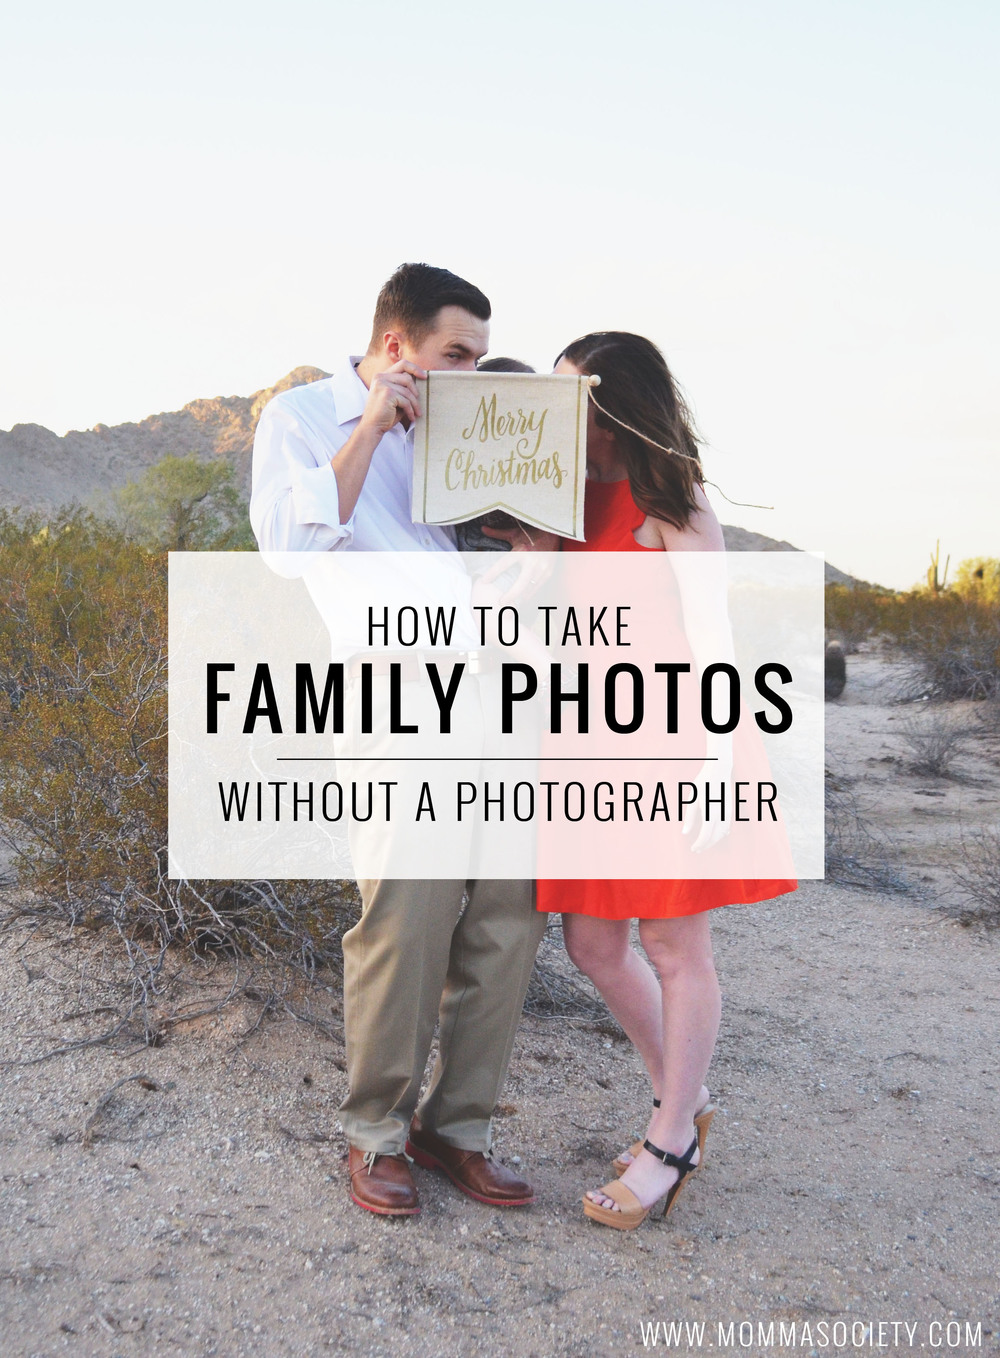 How to take your own holiday family photos without a photographer | Momma Society-The Community of Modern Moms | www.MommaSociety.com